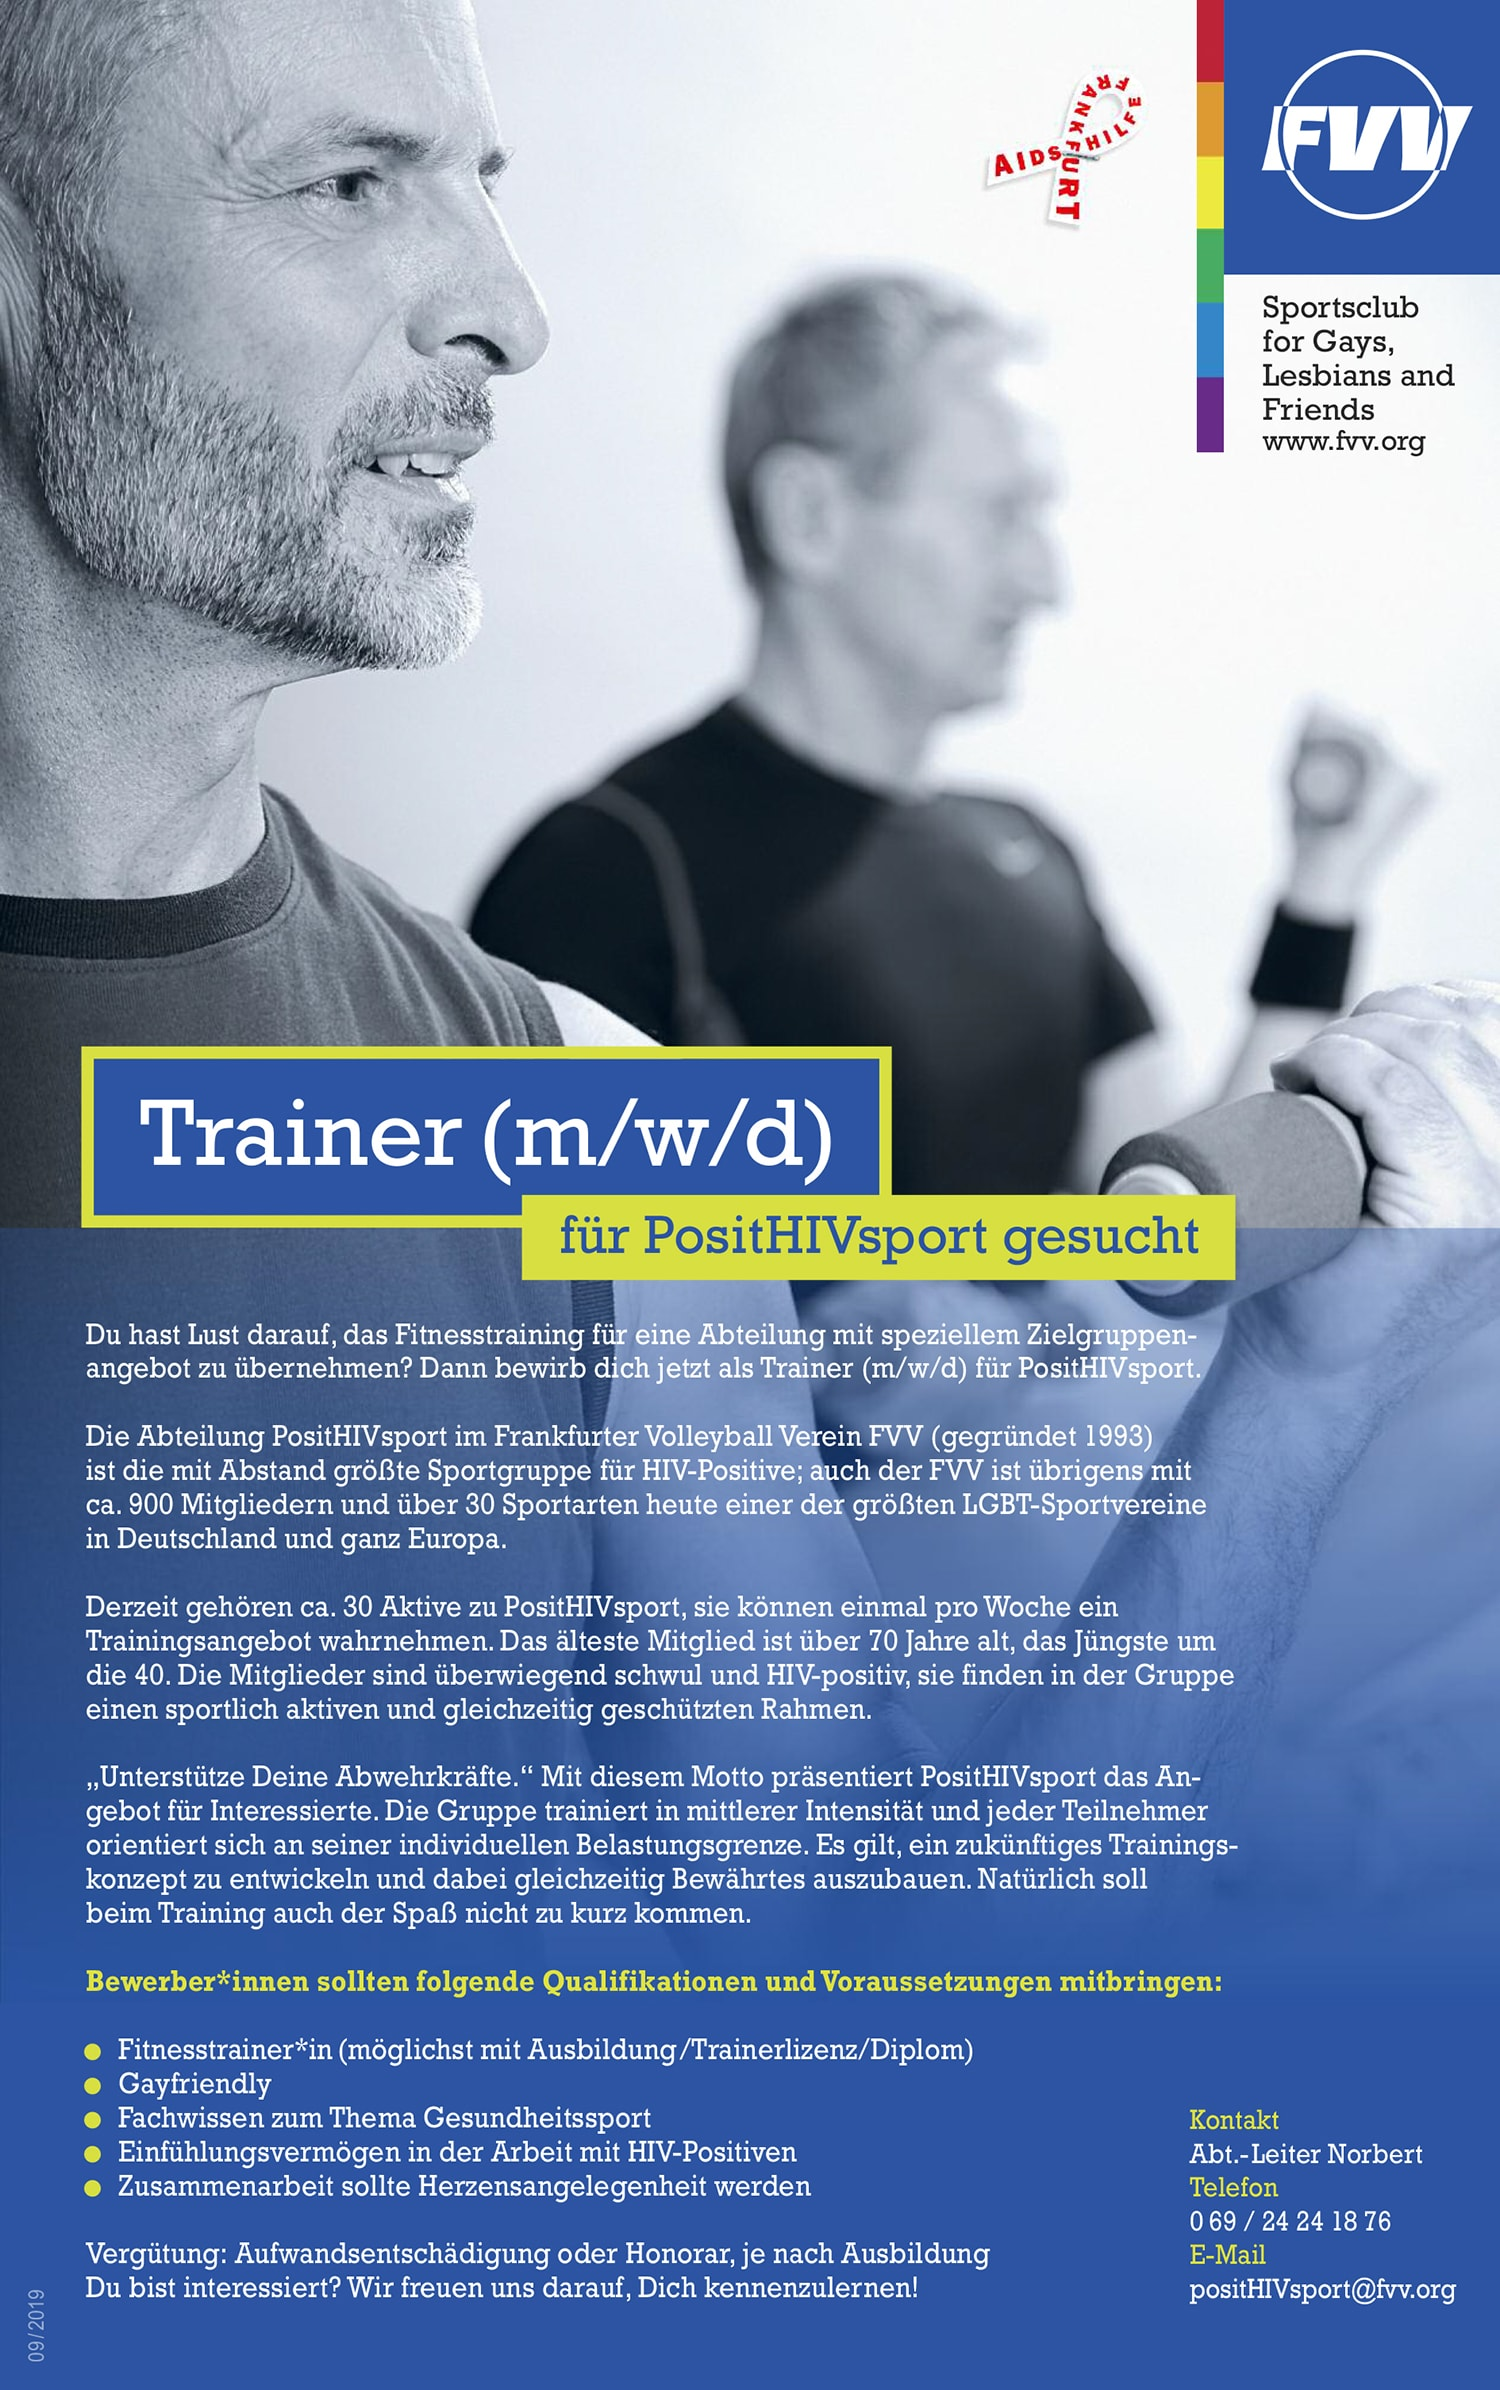 FVV Fitness2 Trainergesuch 09 19 min